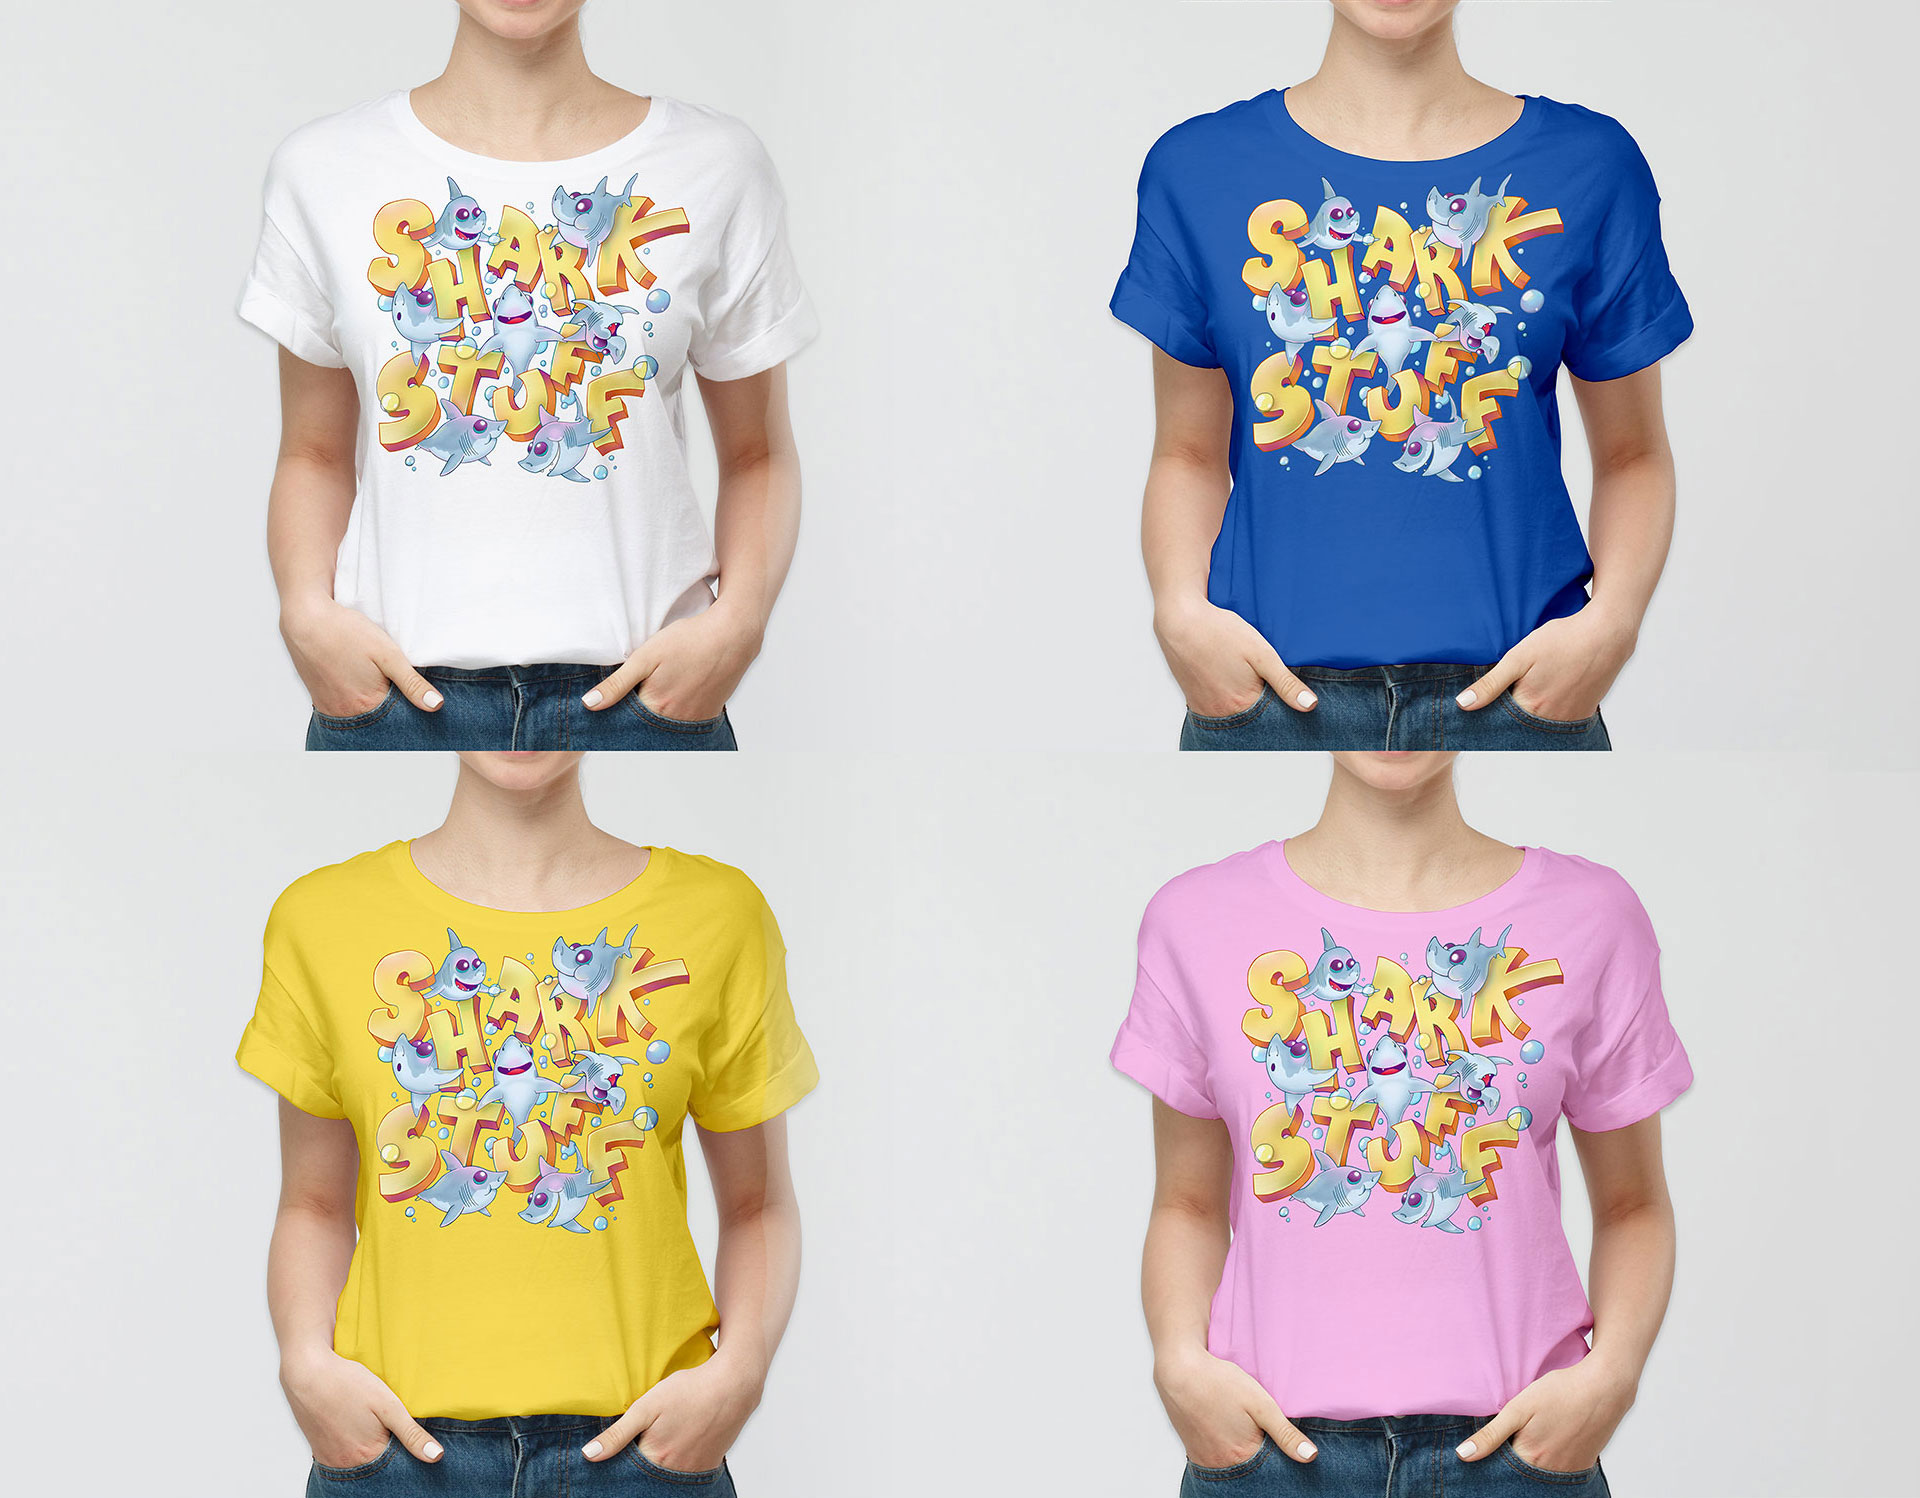 Cutie Sharks T-Shirt Designs